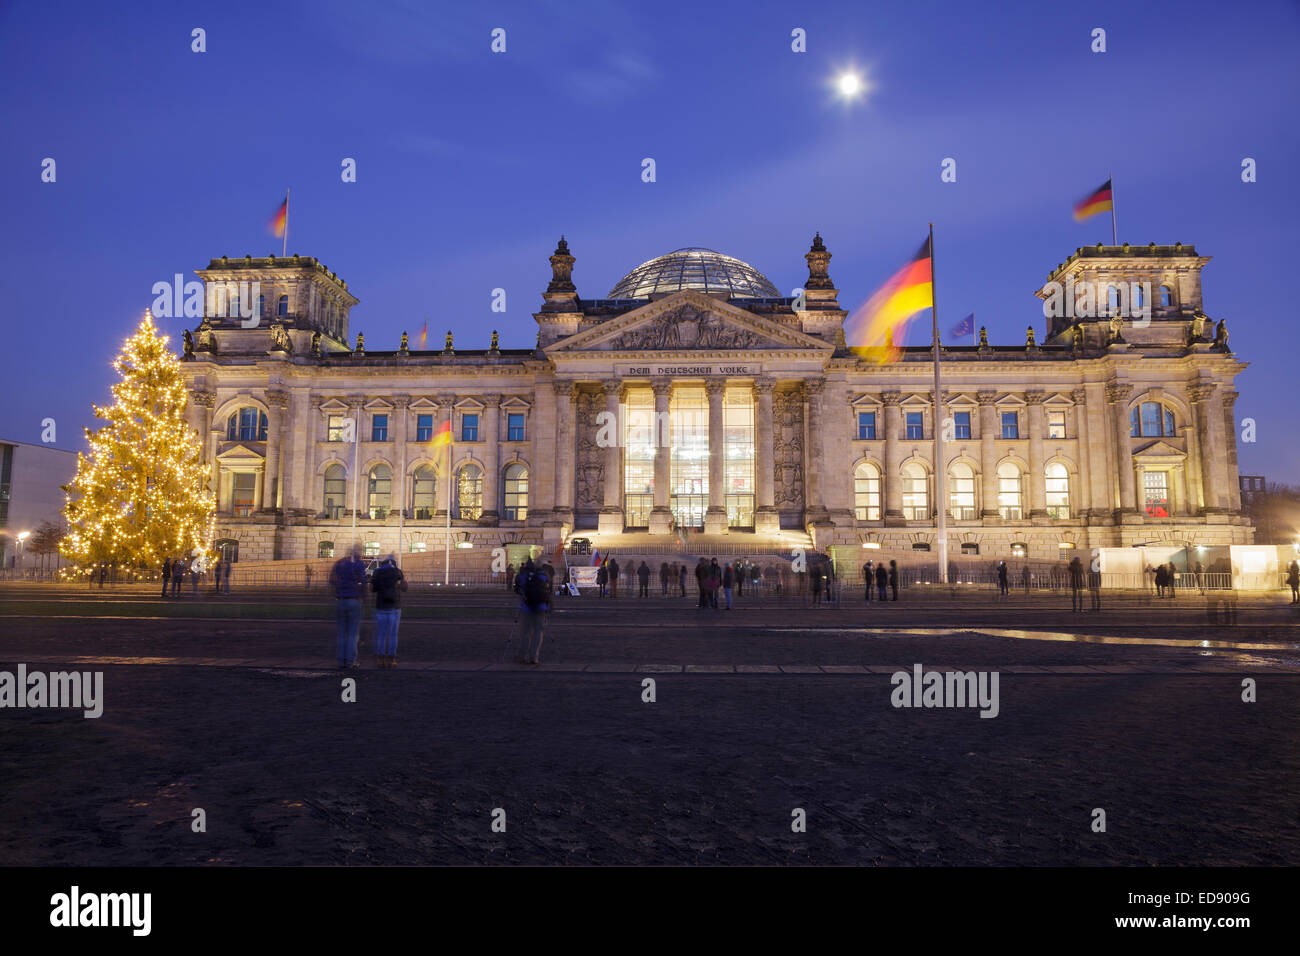 Reichstag with Christmas tree, Berlin, Germany - Stock Image